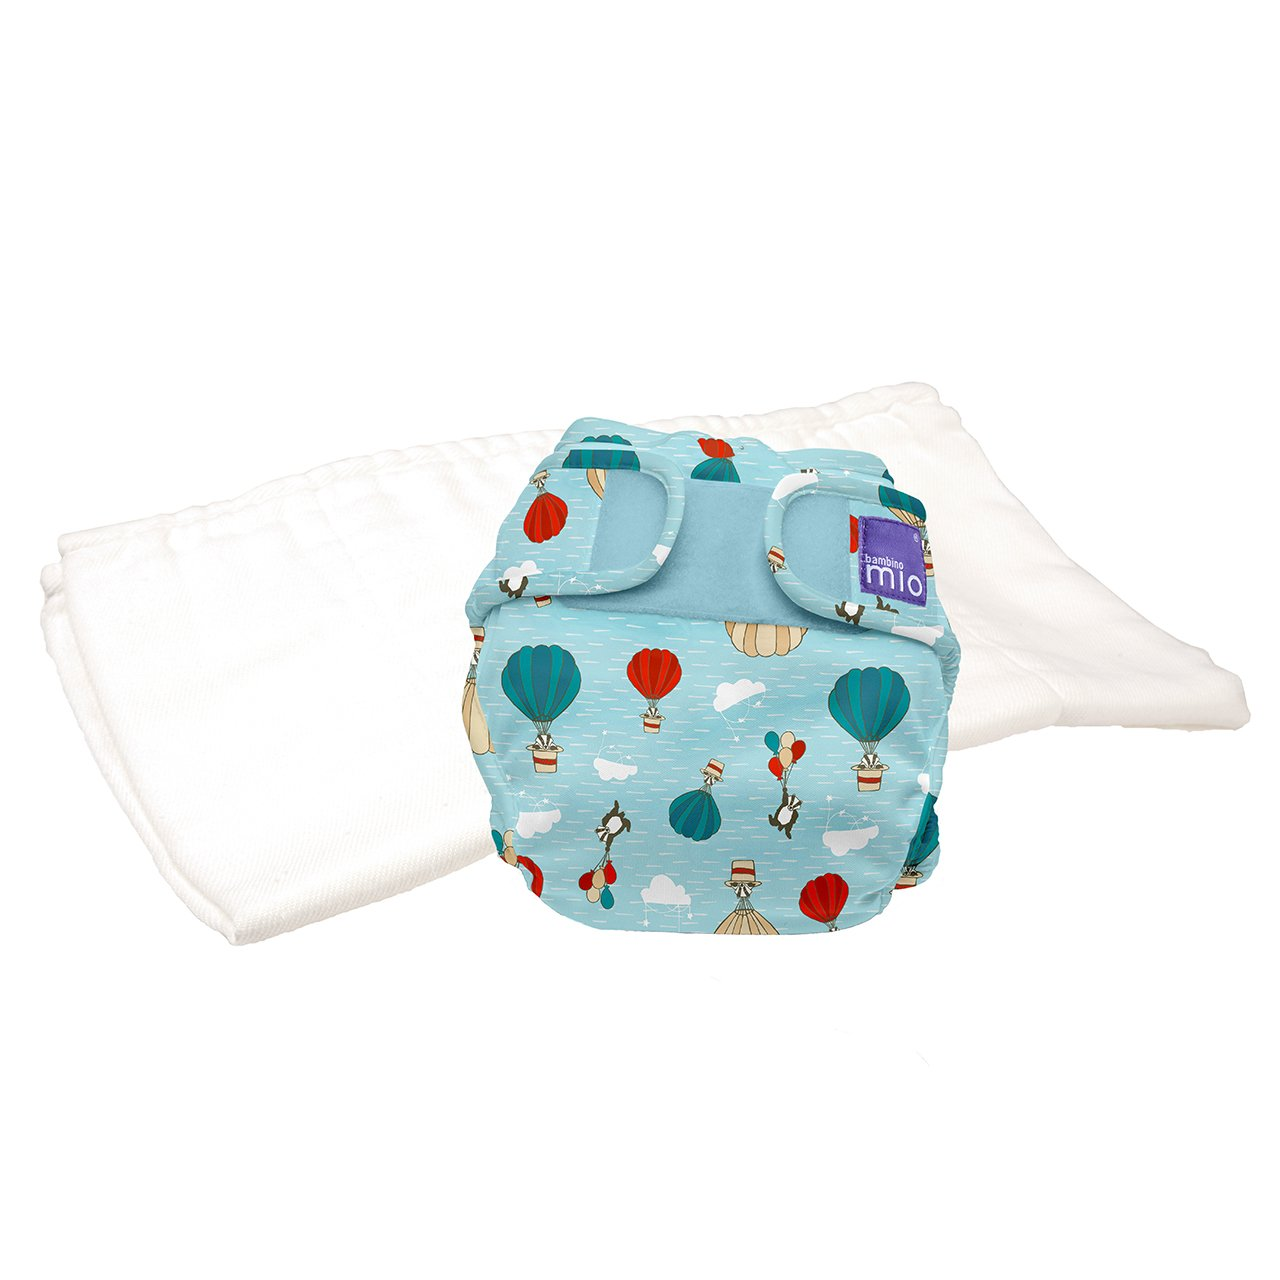 Bambino Mio, Miosoft Cloth Diaper Trial Pack, Sky Ride, Size 1 (<21lbs)